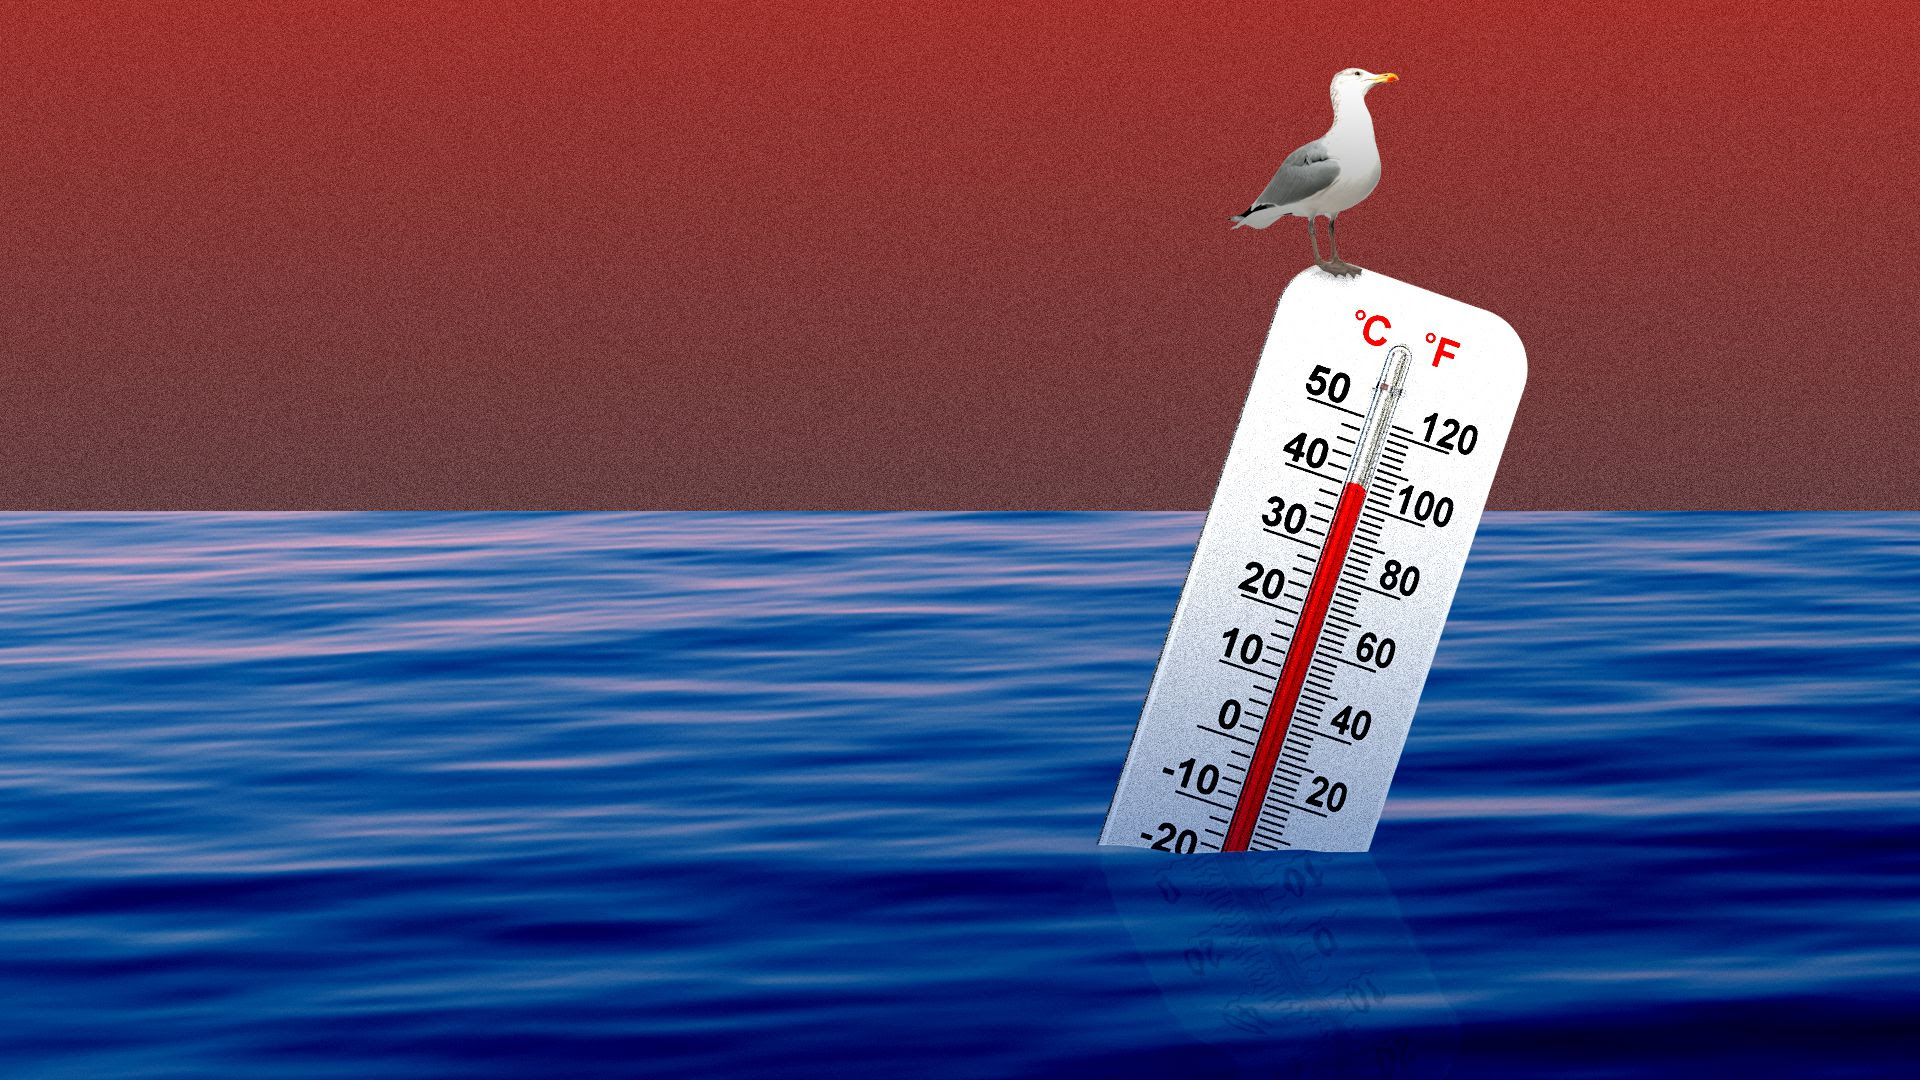 Illustration of thermometer floating in the ocean